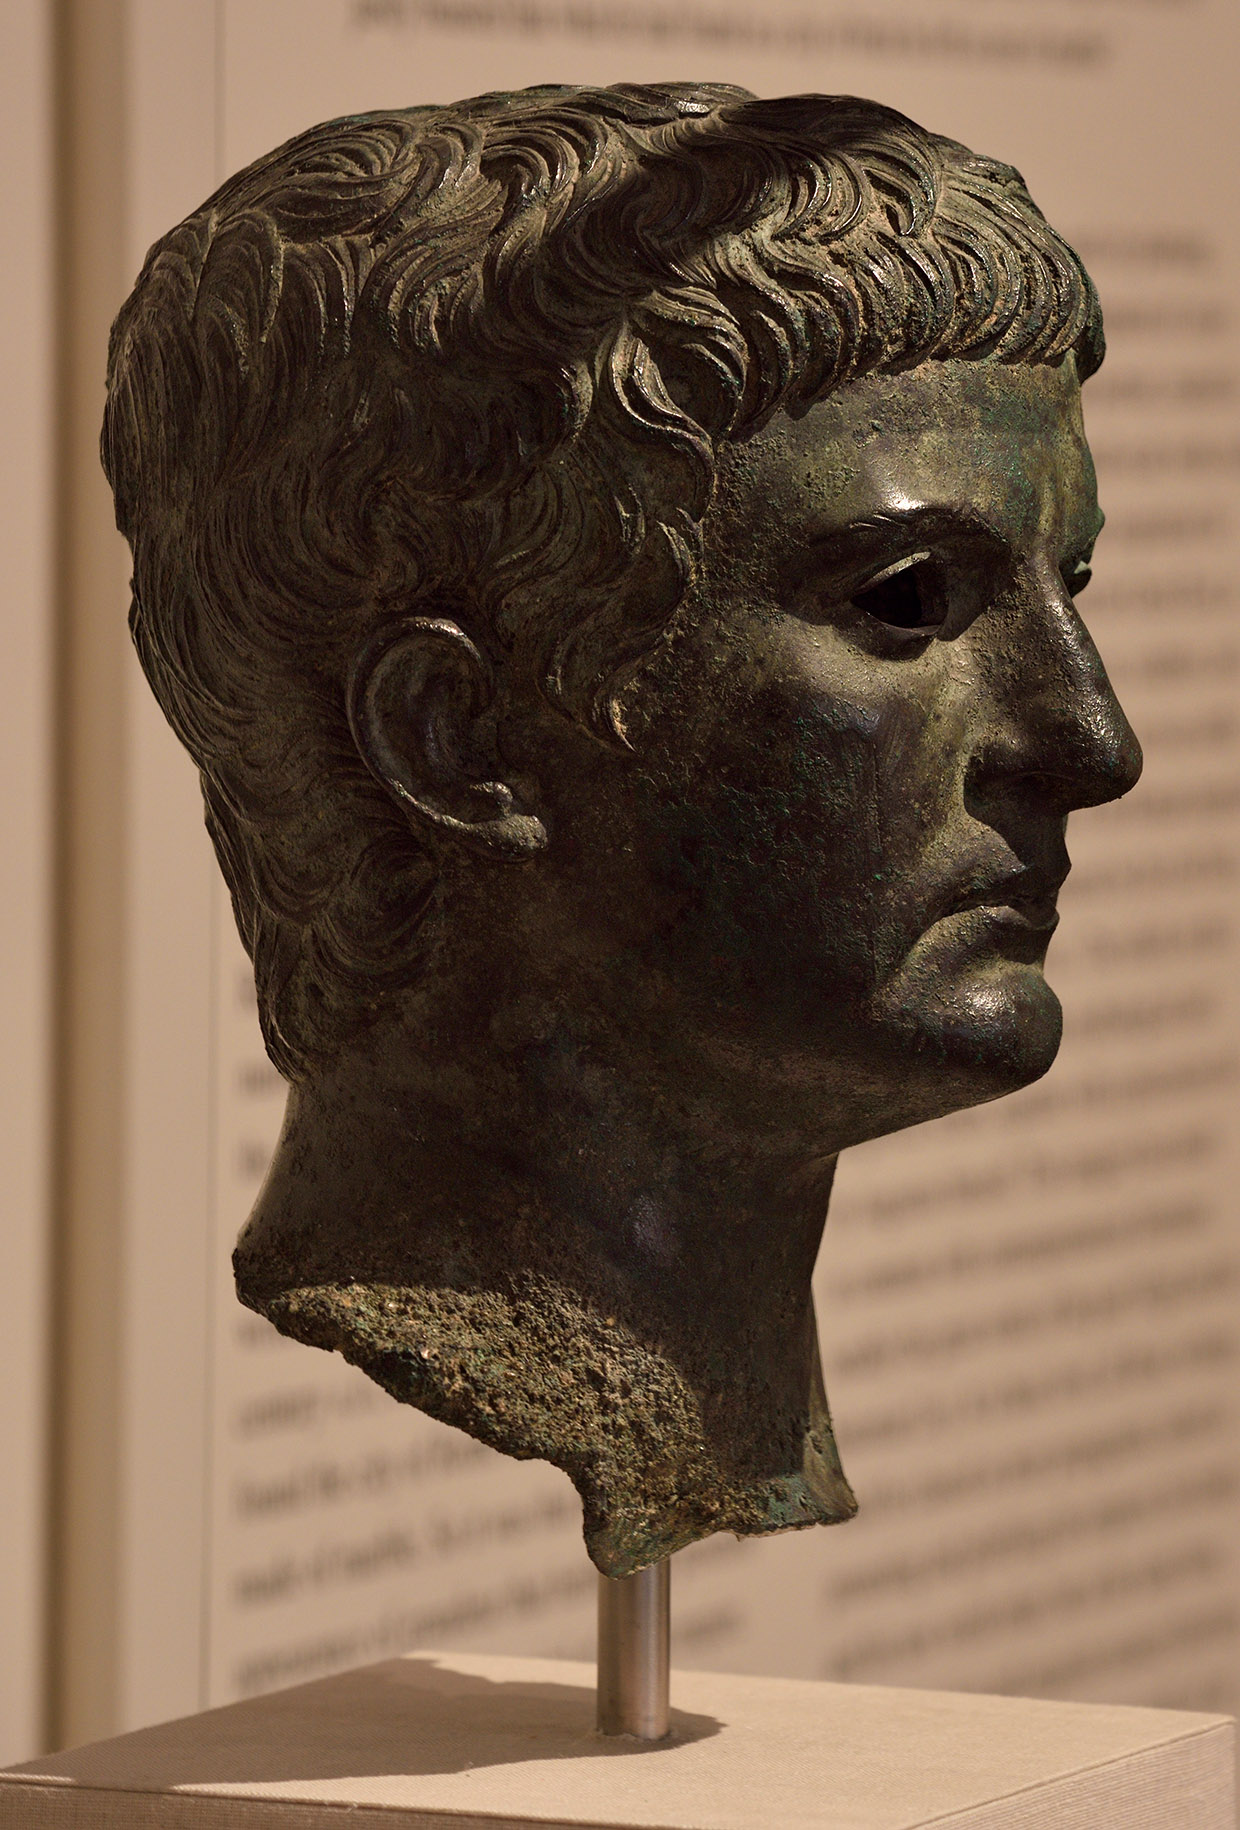 Bronze portrait of a man, identified as Marcus Agrippa. Bronze. Roman. Early 1st cent. CE. Inv. No. 14.130.2. New York, the Metropolitan Museum of Art